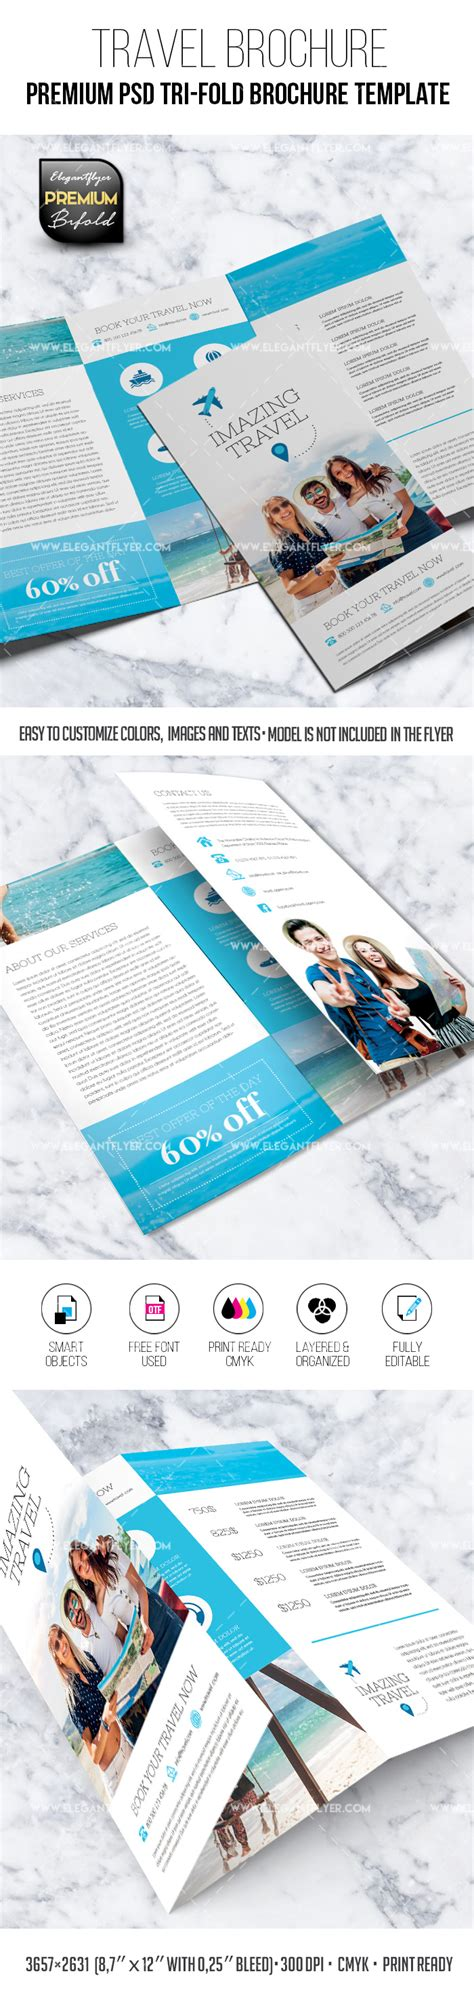 Tri Fold Brochure Templates Free By Elegantflyer Travel Tri Fold Brochure Psd Template By Elegantflyer